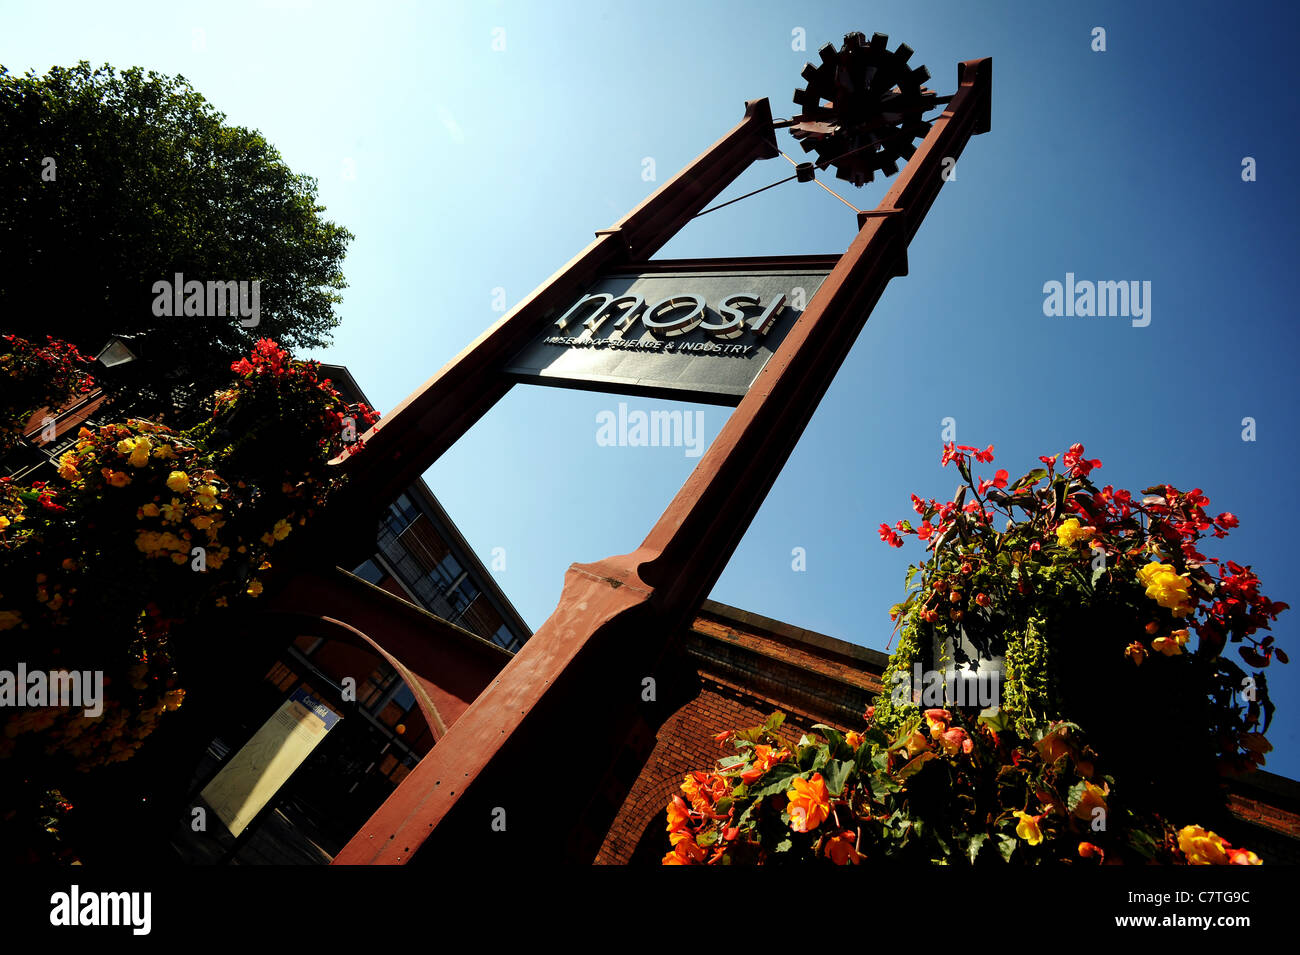 The Museum of Science and Industry, Manchester, England. Picture by Paul Heyes, Wednesday September 28, 2011. - Stock Image